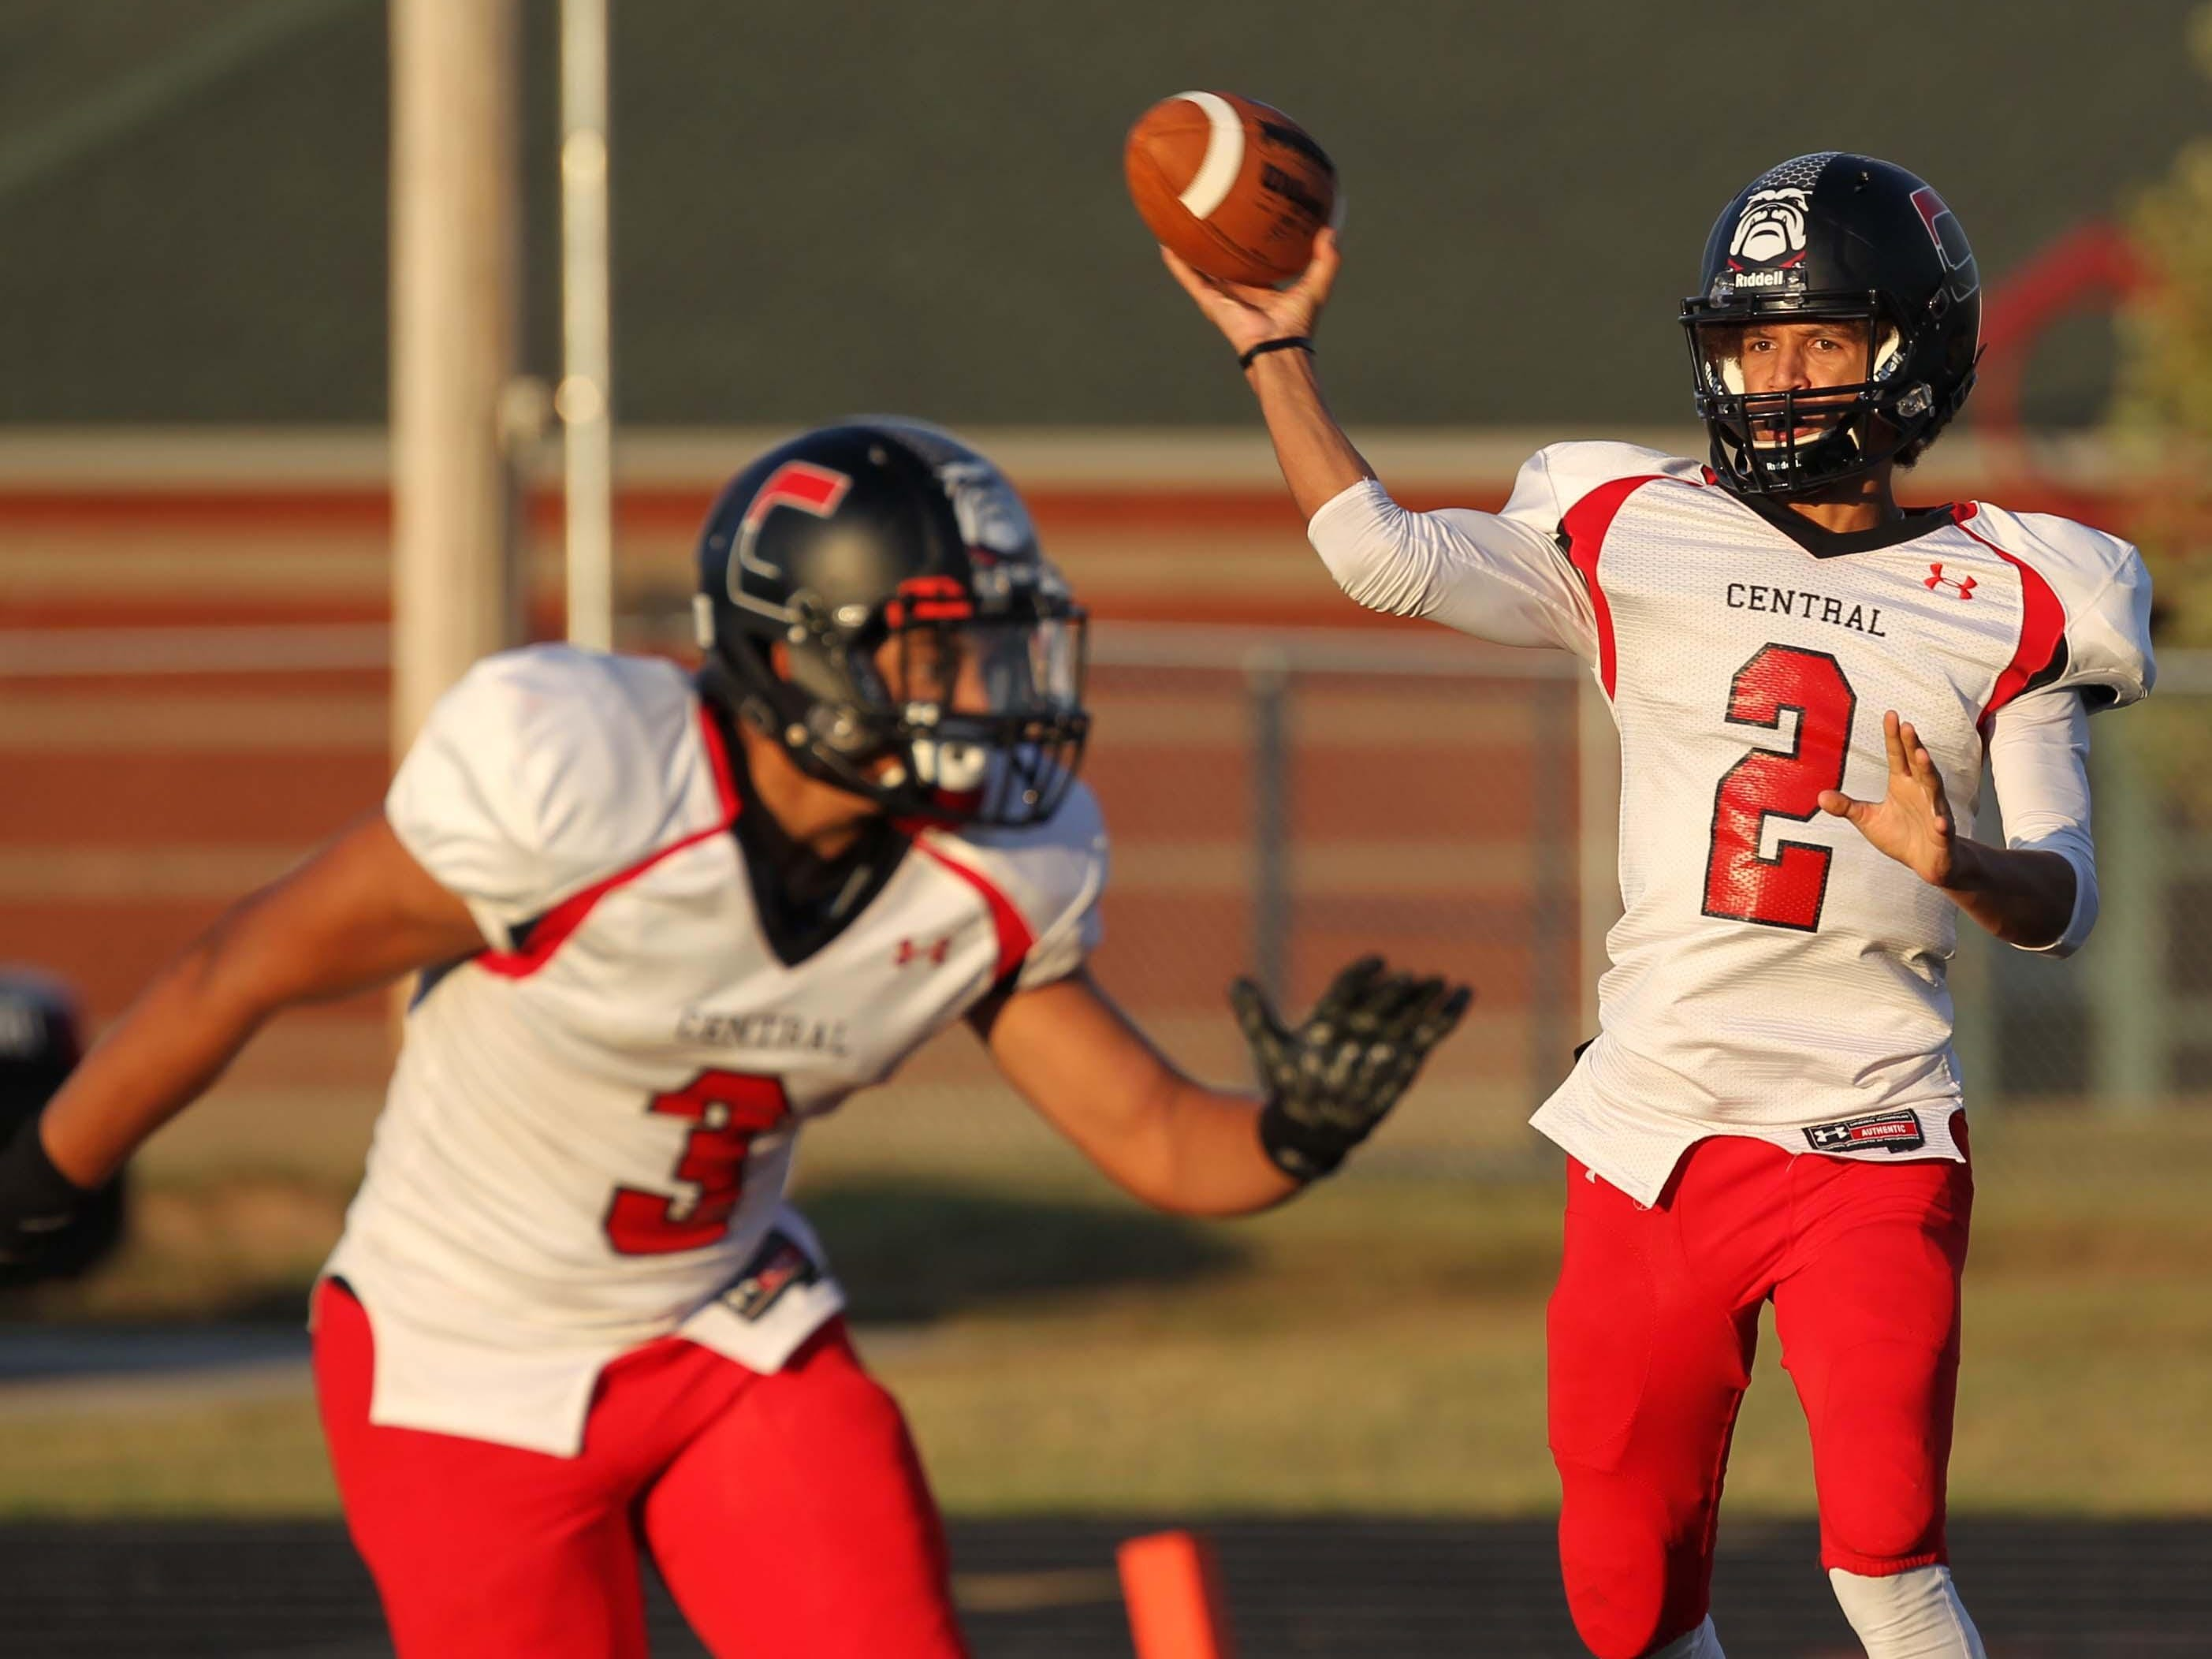 From left, Central running back Garrett King and quarterback Quintin Batson have been offensive starters for the Central Bulldogs since the opening game of their freshman season.